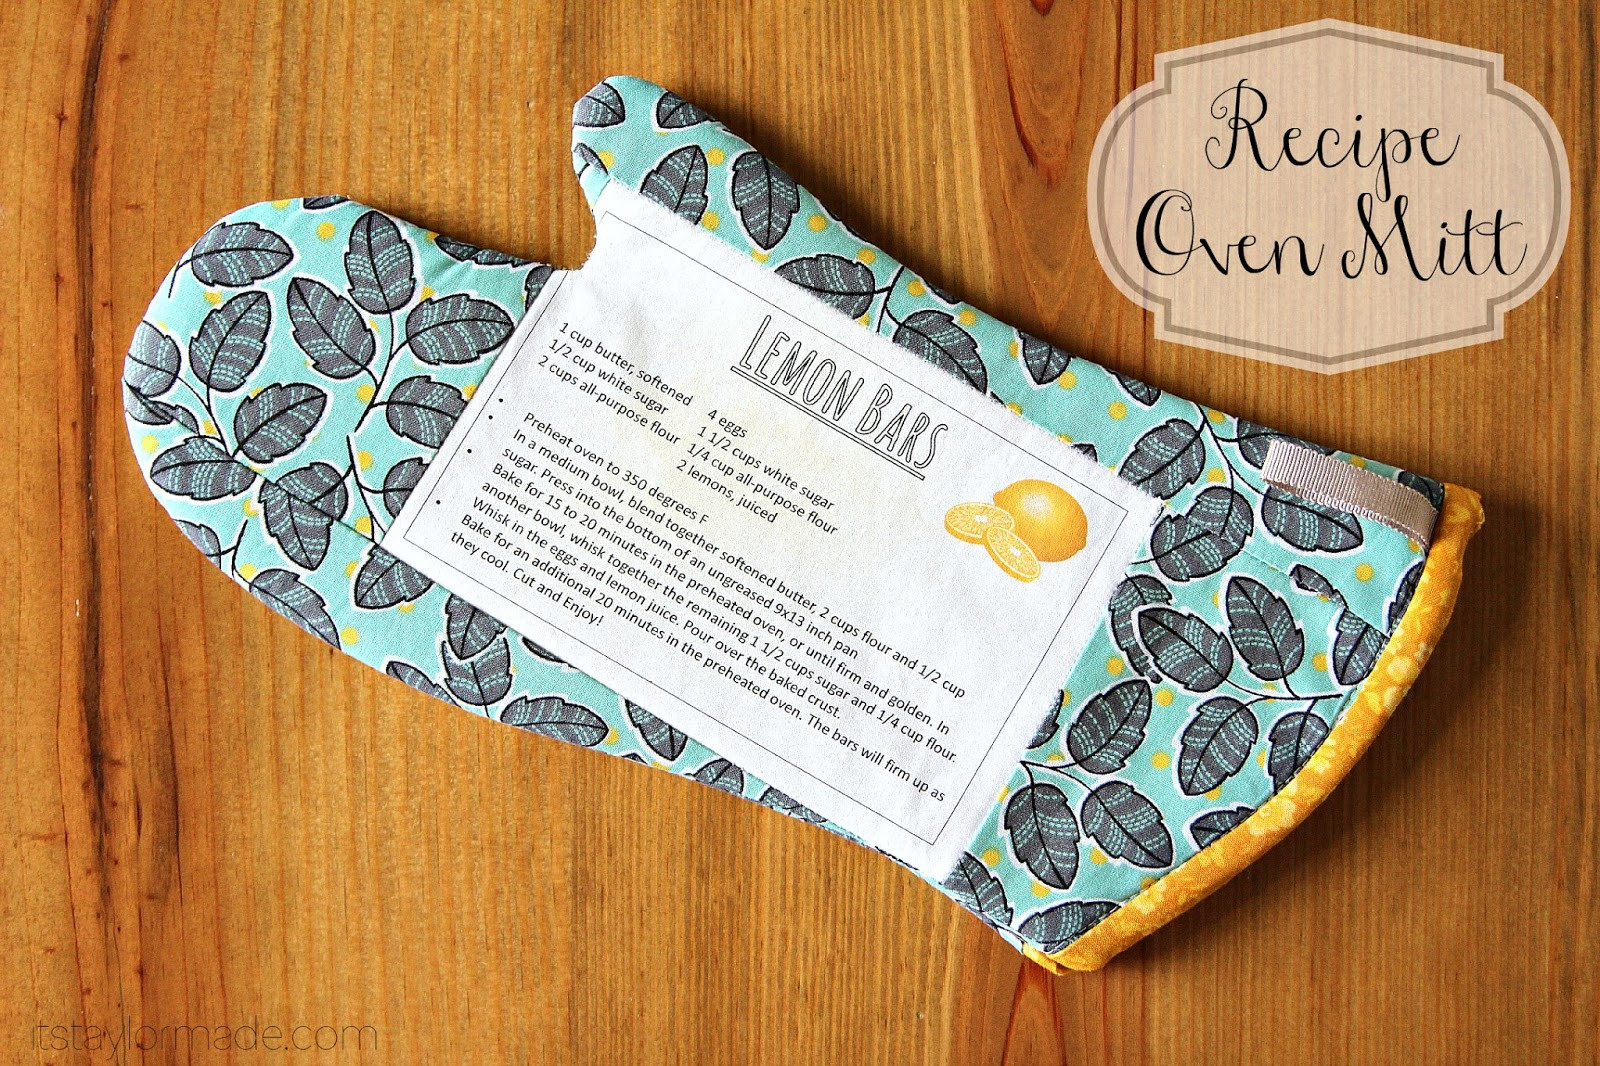 Best ideas about Mother'S Day Gift Ideas For Church Ladies . Save or Pin Handmade Mother s Day Recipe Oven Mitt TaylorMade Now.